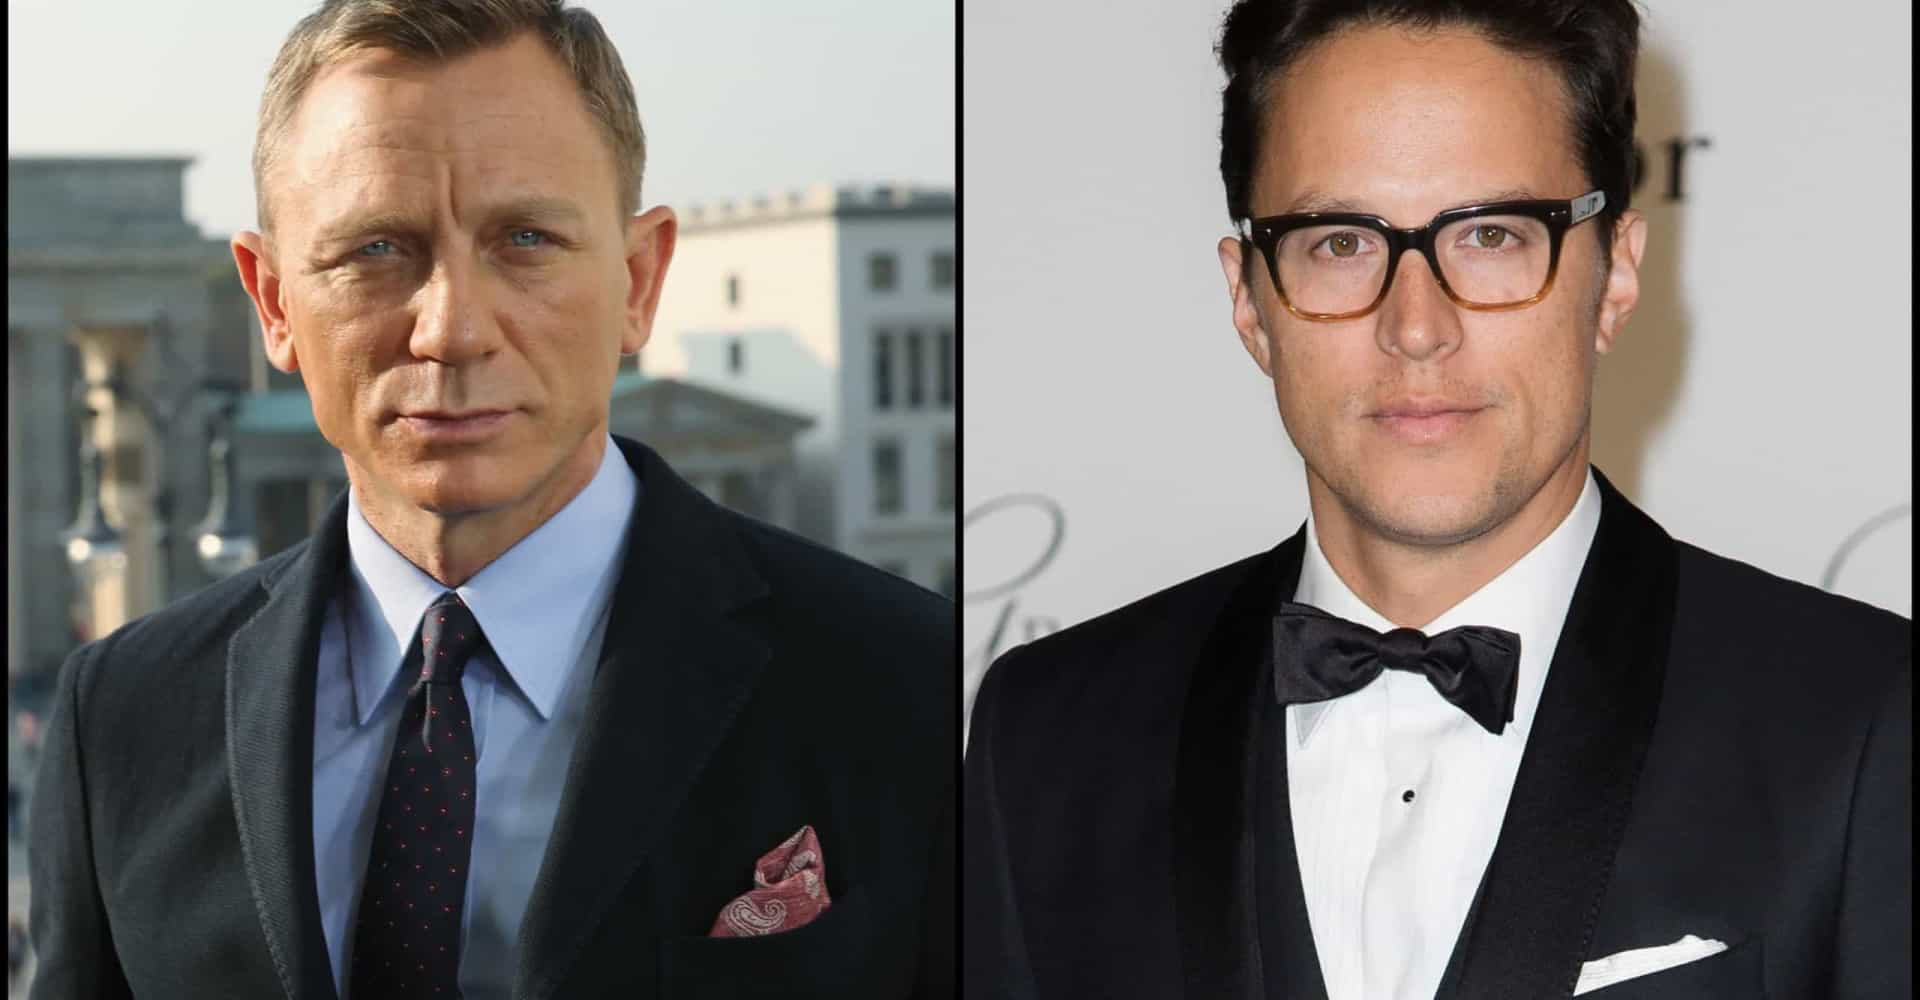 From 'Jane Eyre' to 'James Bond': meet Hollywood's hottest new director